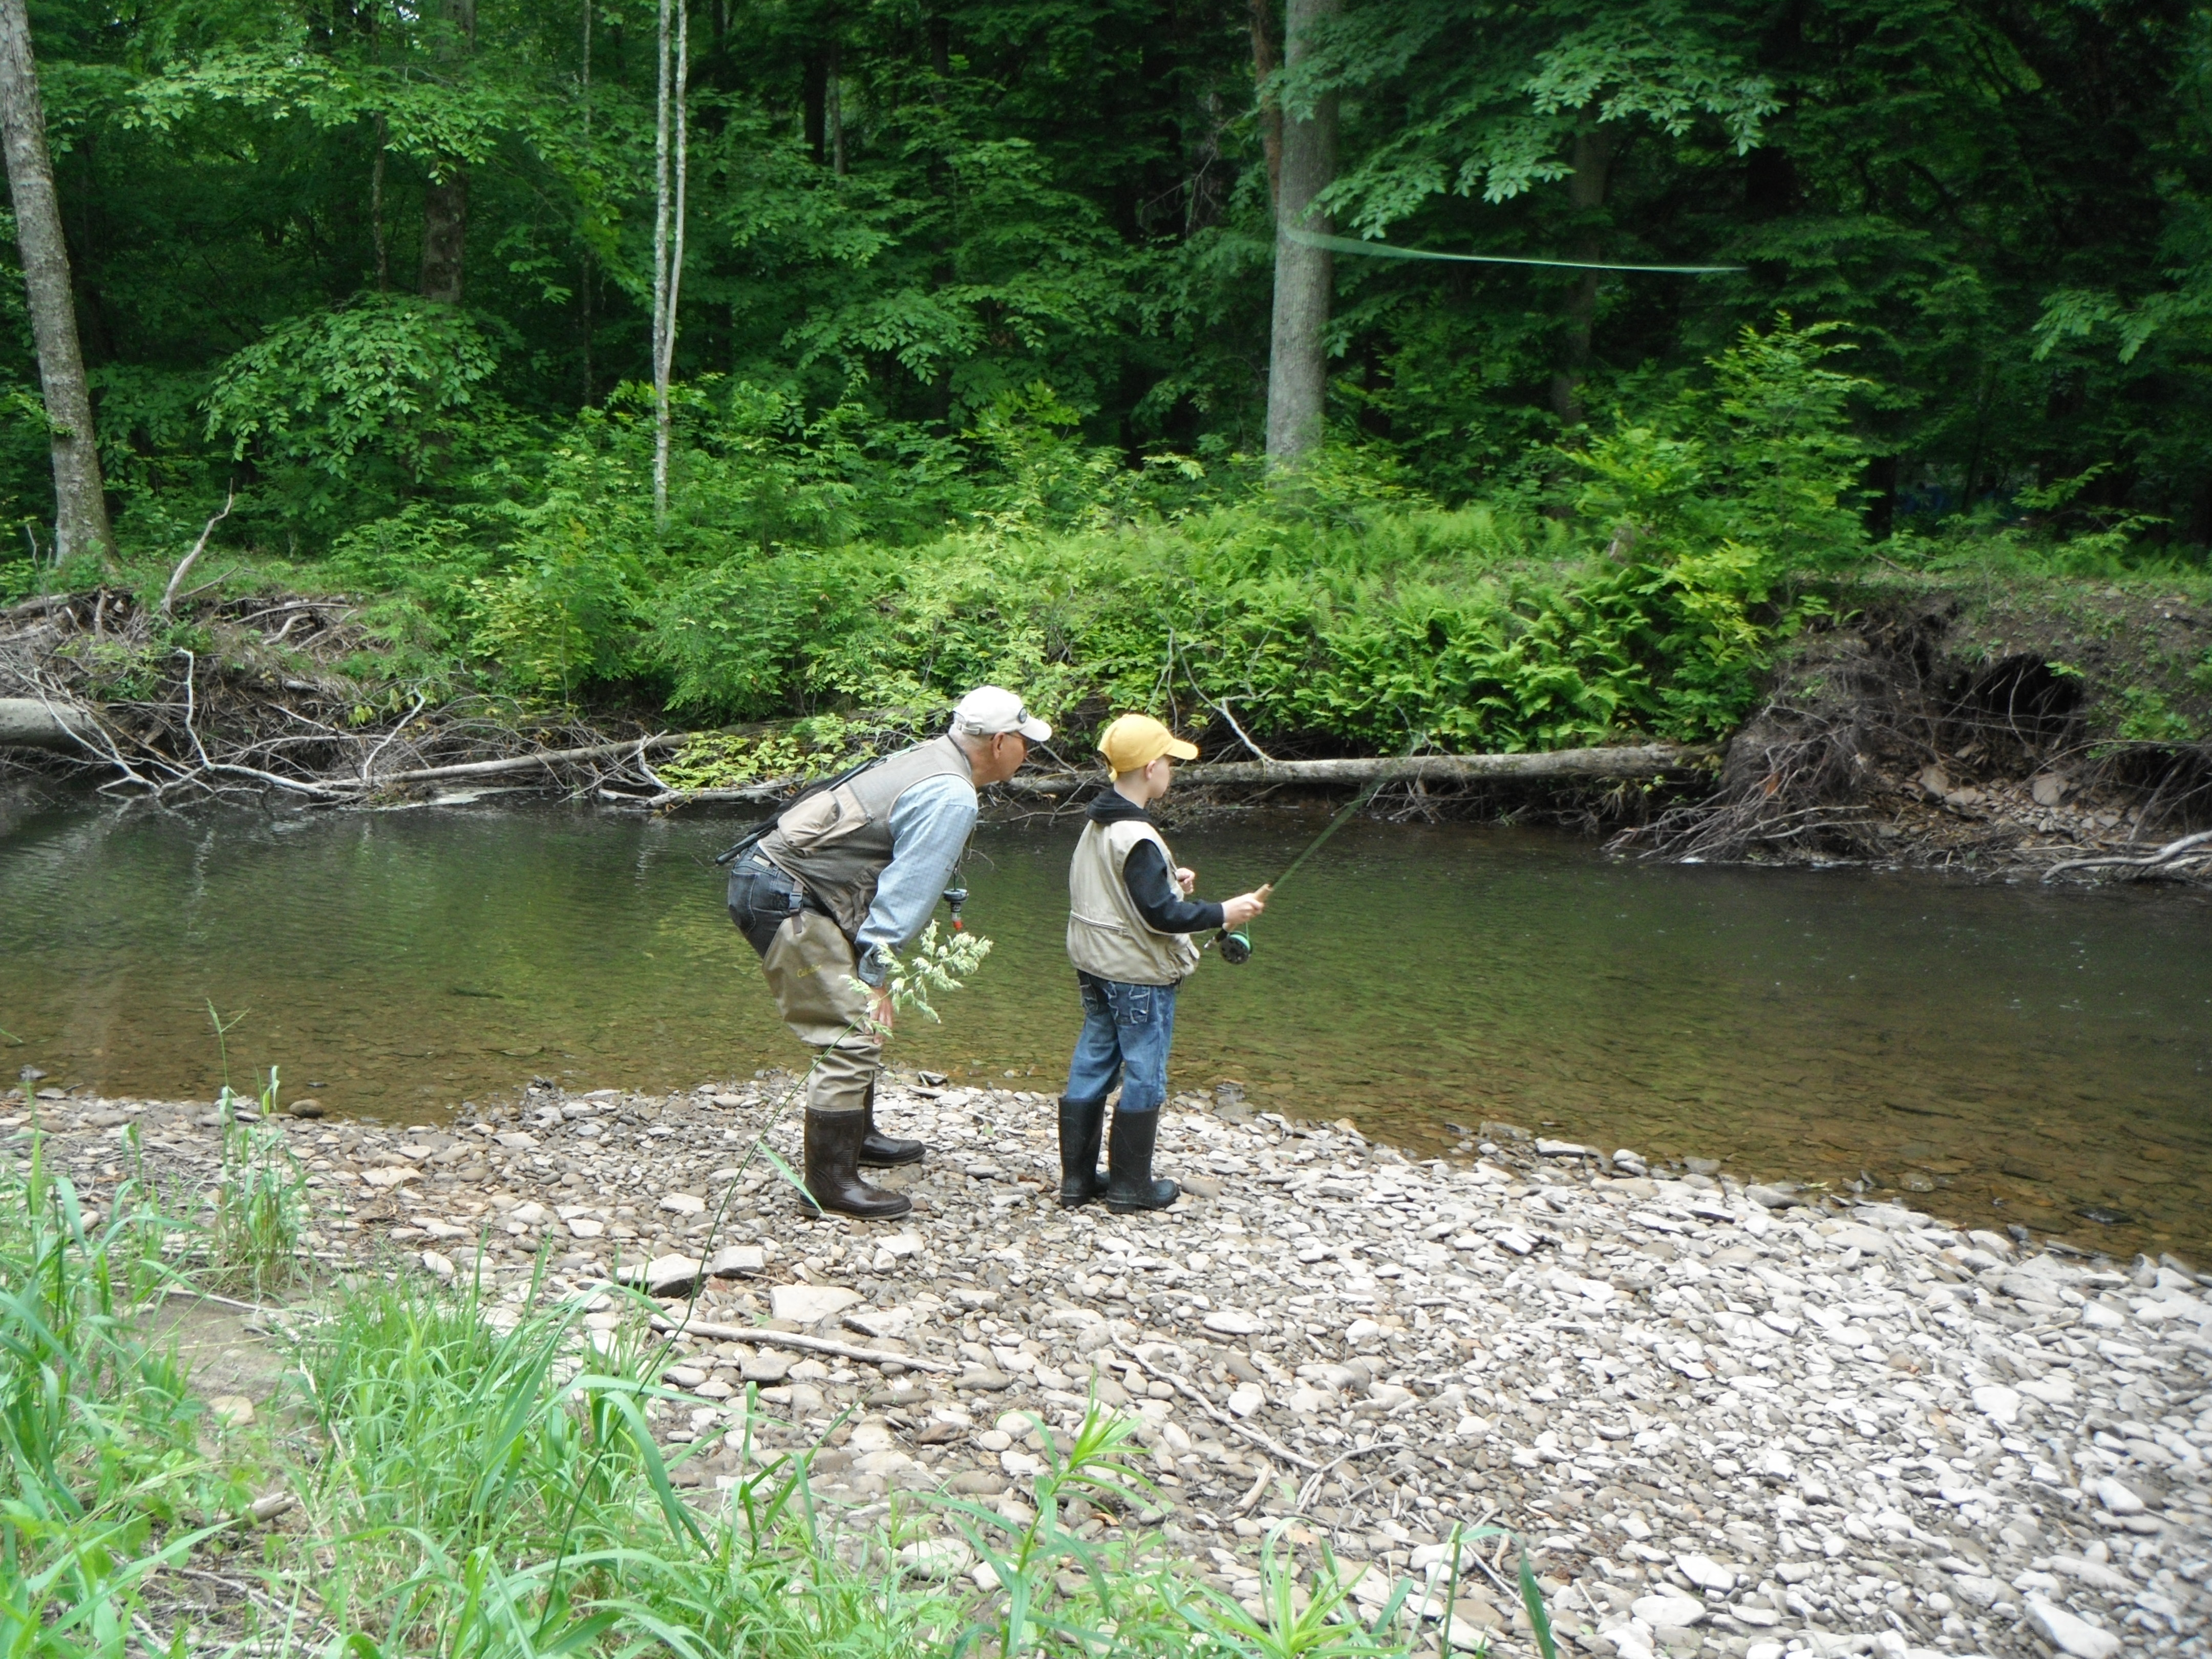 Thetroutscout captures flyfishing experiences for Fishing in pennsylvania